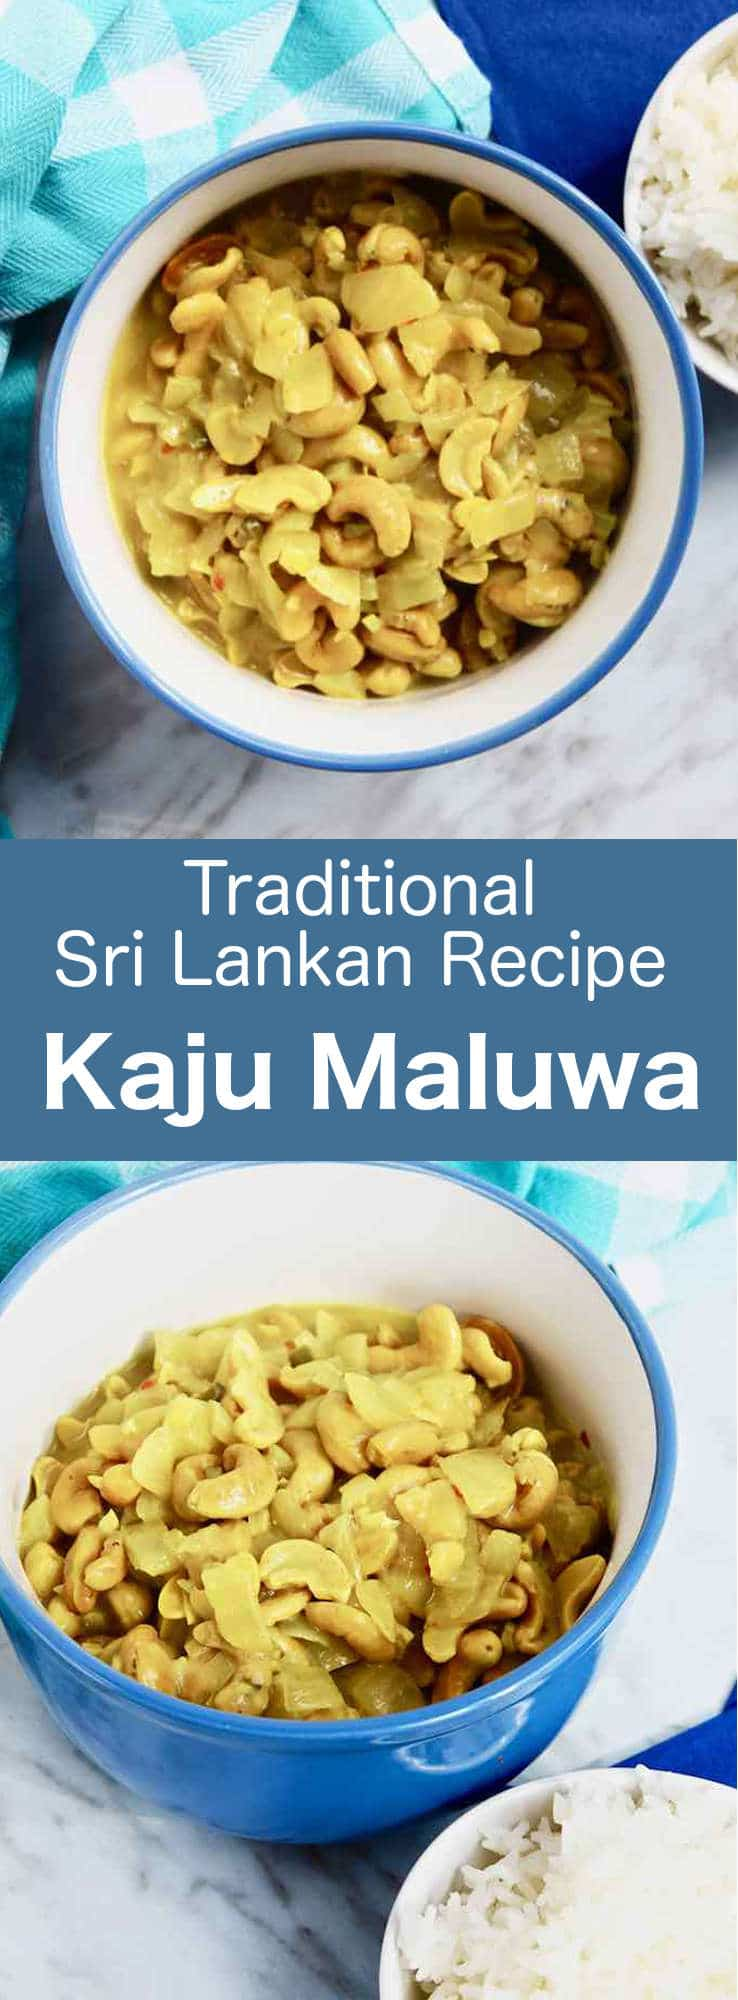 Kaju maluwa (cashew curry) is a traditional Sri Lankan recipe that is prepared with soaked cashew nuts cooked in coconut milk with various aromatic spices and herbs. #SriLanka #SriLankanCuisine #SriLankanCurry #SriLankanRecipe #WorldCuisine #196flavors